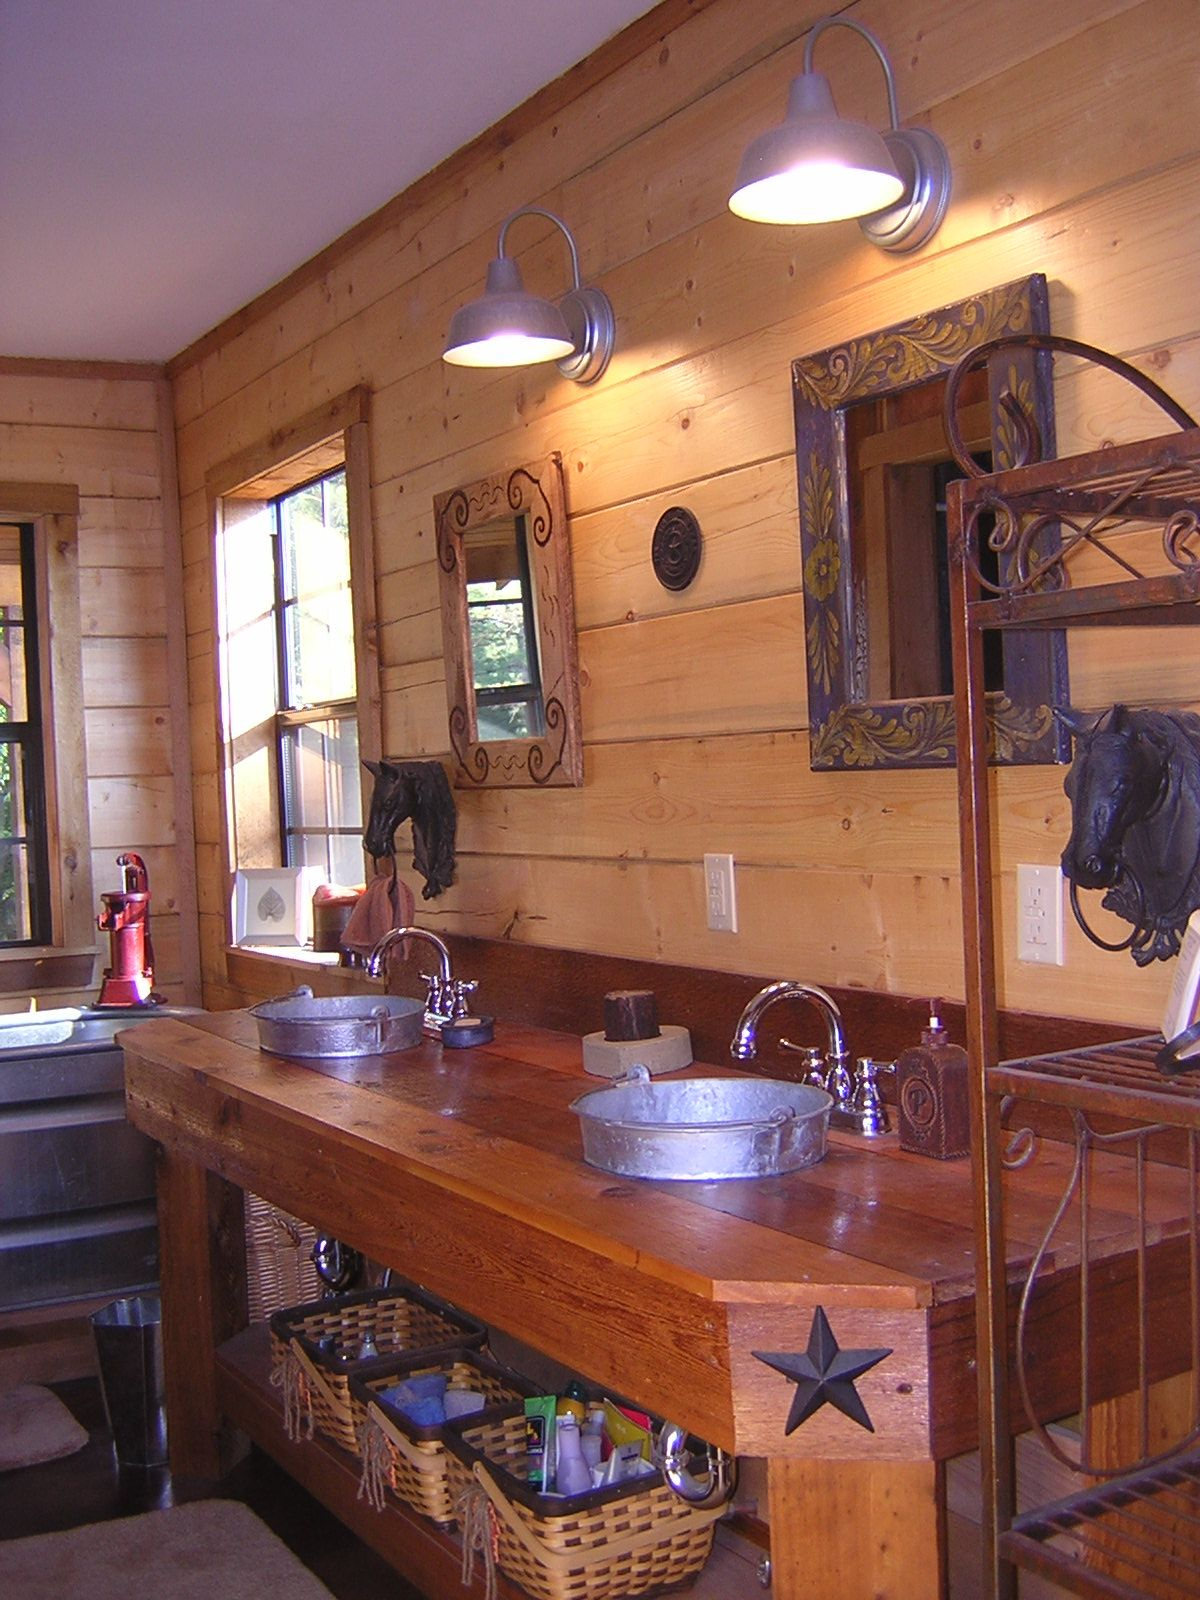 Pin By Lynette Patterson On Log Home Decor Rustic Bathrooms His And Hers Sinks Bathroom Red